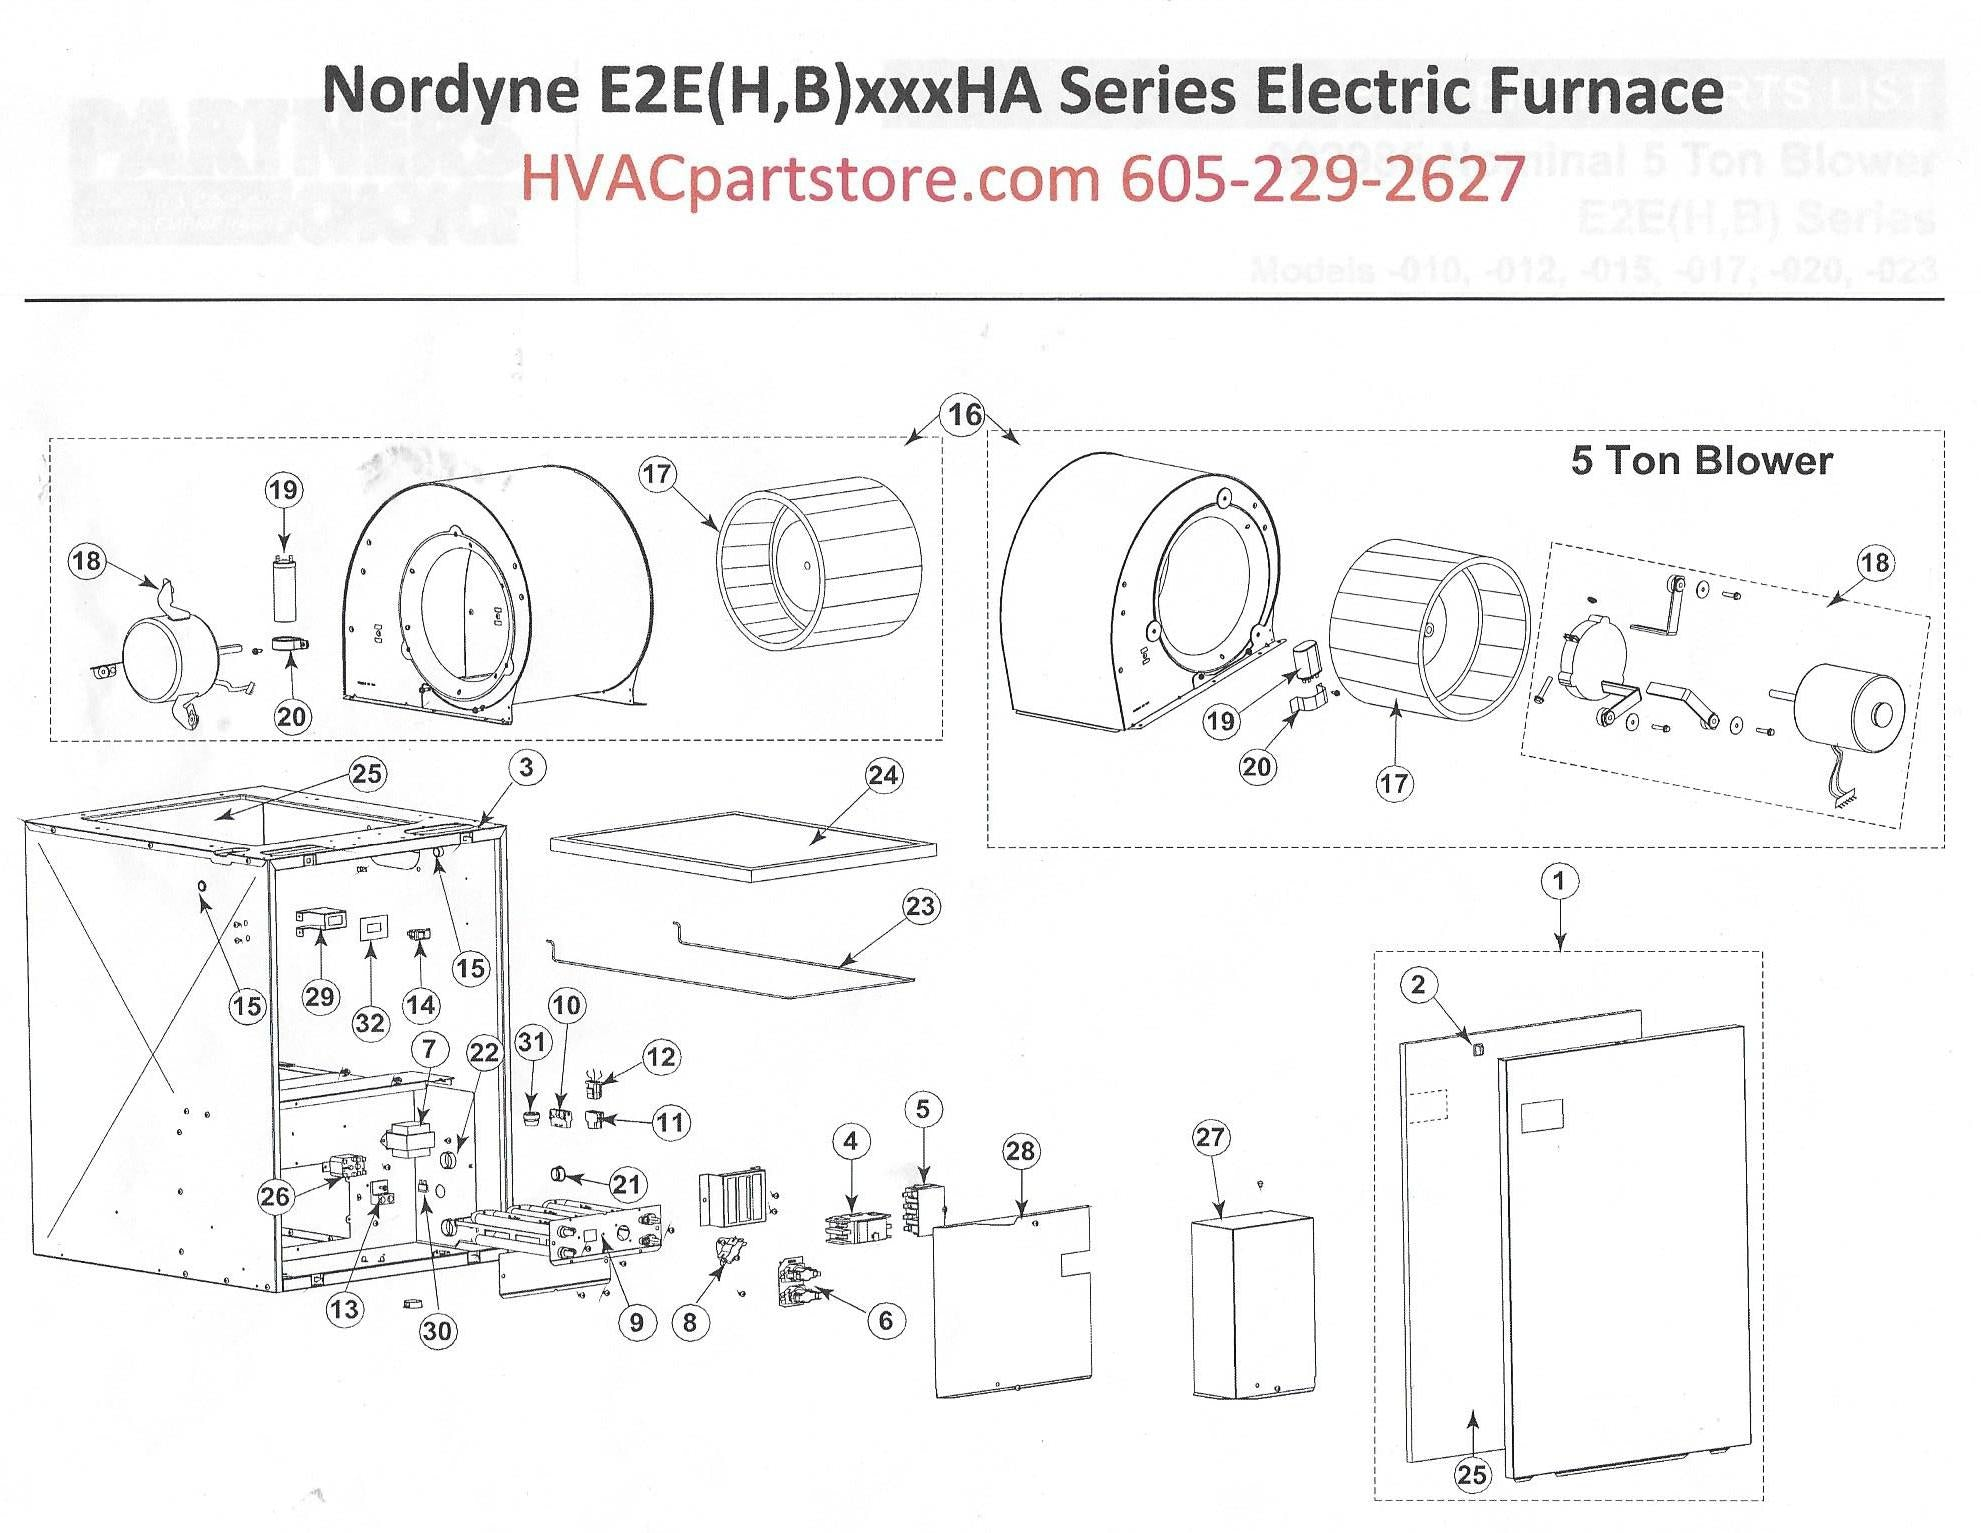 e2eh015ha nordyne electric furnace parts hvacpartstore rh hvacpartstore myshopify com 4 Pole Sequencer Wiring-Diagram Heat Pump Wiring Diagram